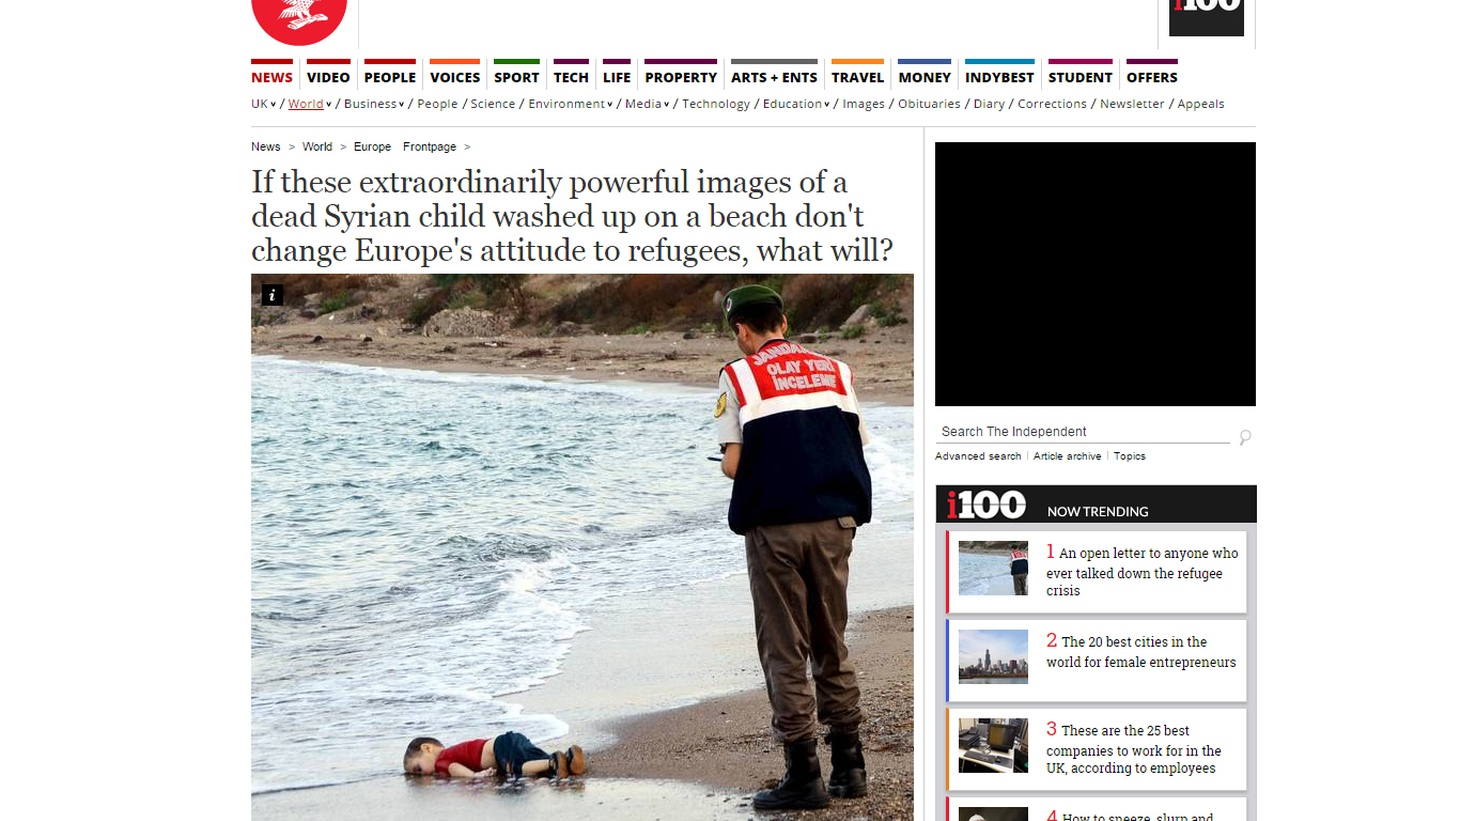 The photo of a young boy, drowned and washed ashore on a Turkish beach, has captured the world's attention. The photo has become a striking emblem of the refugee crisis in Europe and the Middle East. And, if you've eaten at upscale restaurants in the last year, you may have noticed a 3 percent charge added to your check to pay for employee healthcare. One customer was unhappy enough with the fee to file a lawsuit on Tuesday.